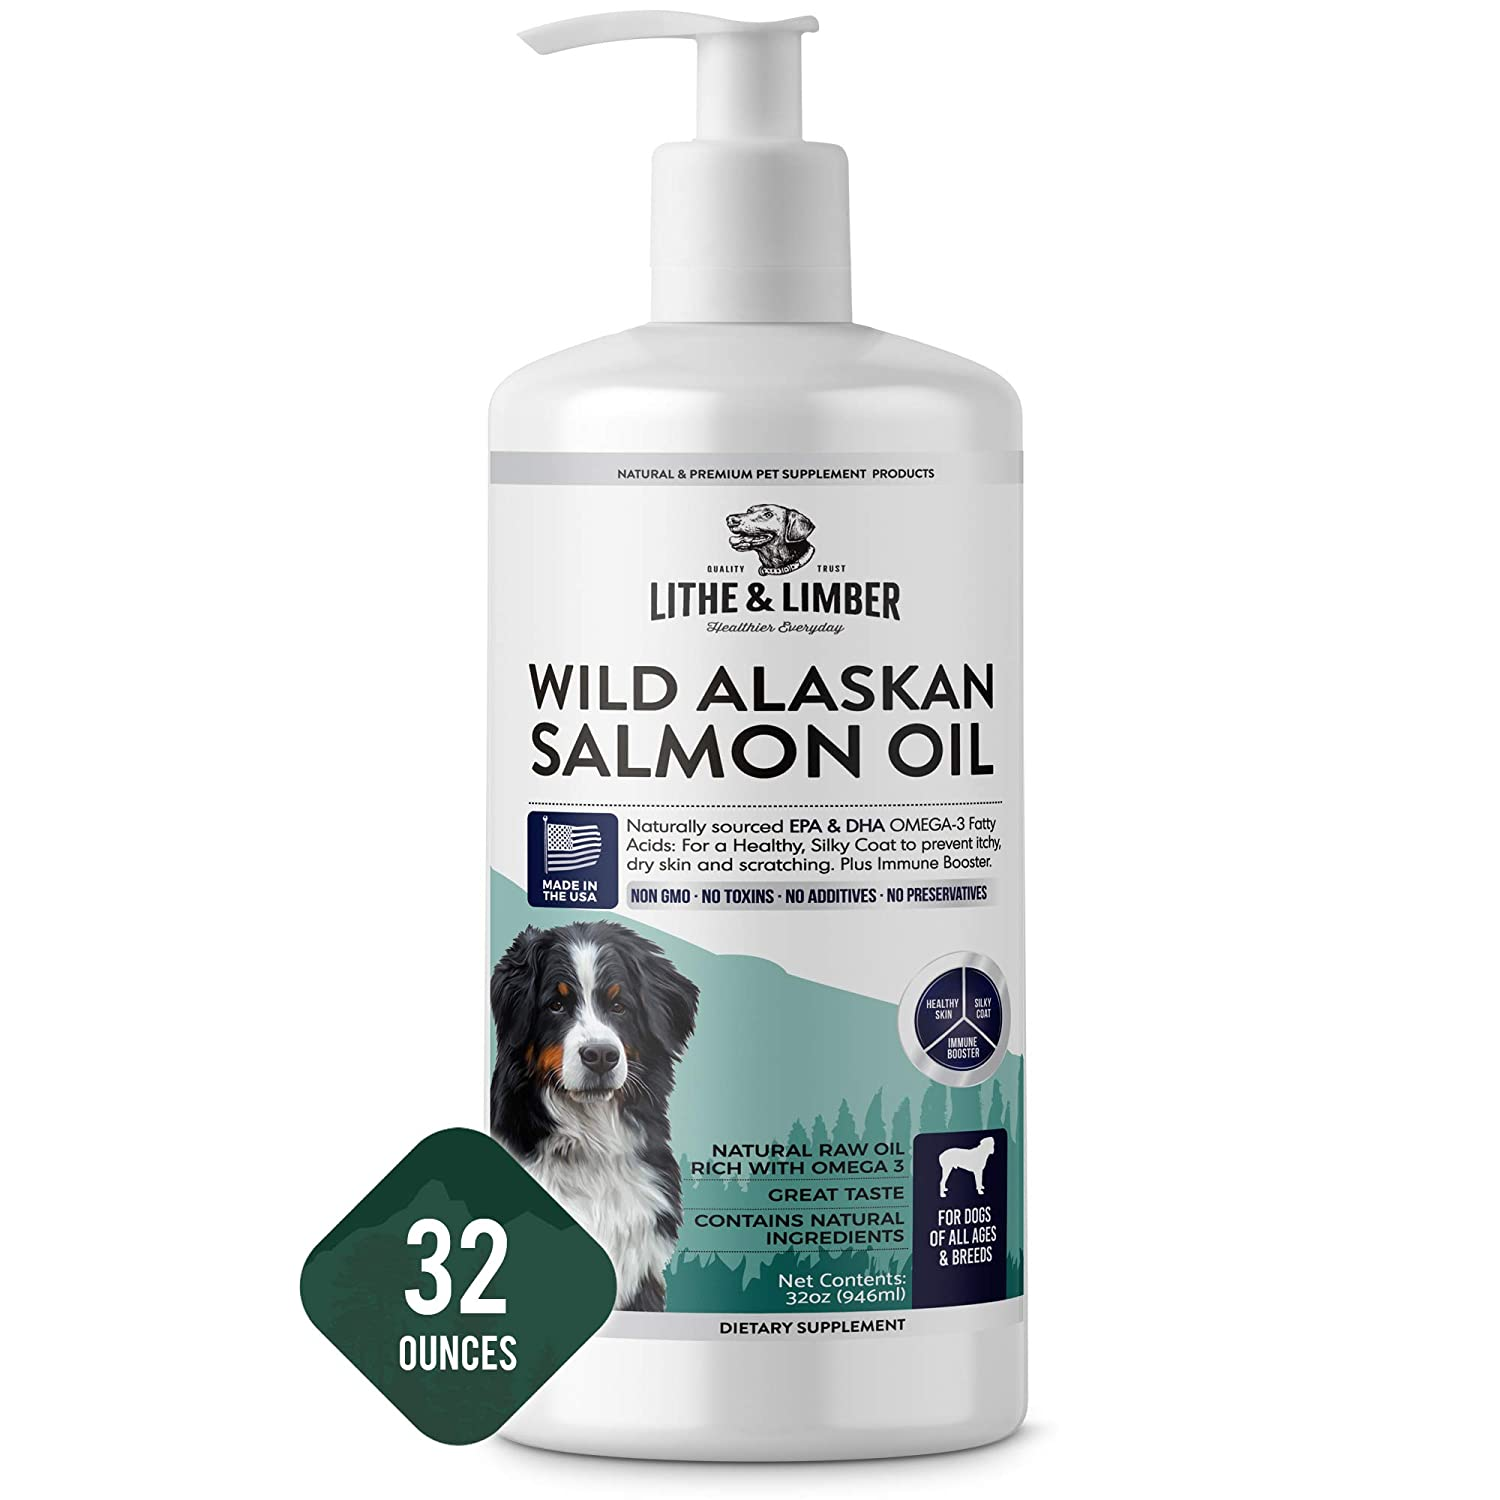 Lithe Limber New Developed Formula Salmon Oil for Dogs – Rich with Omega-3 Omega-6 Fatty Acids to Help with Allergies, Itching Dry Skin – Made in USA – 32oz